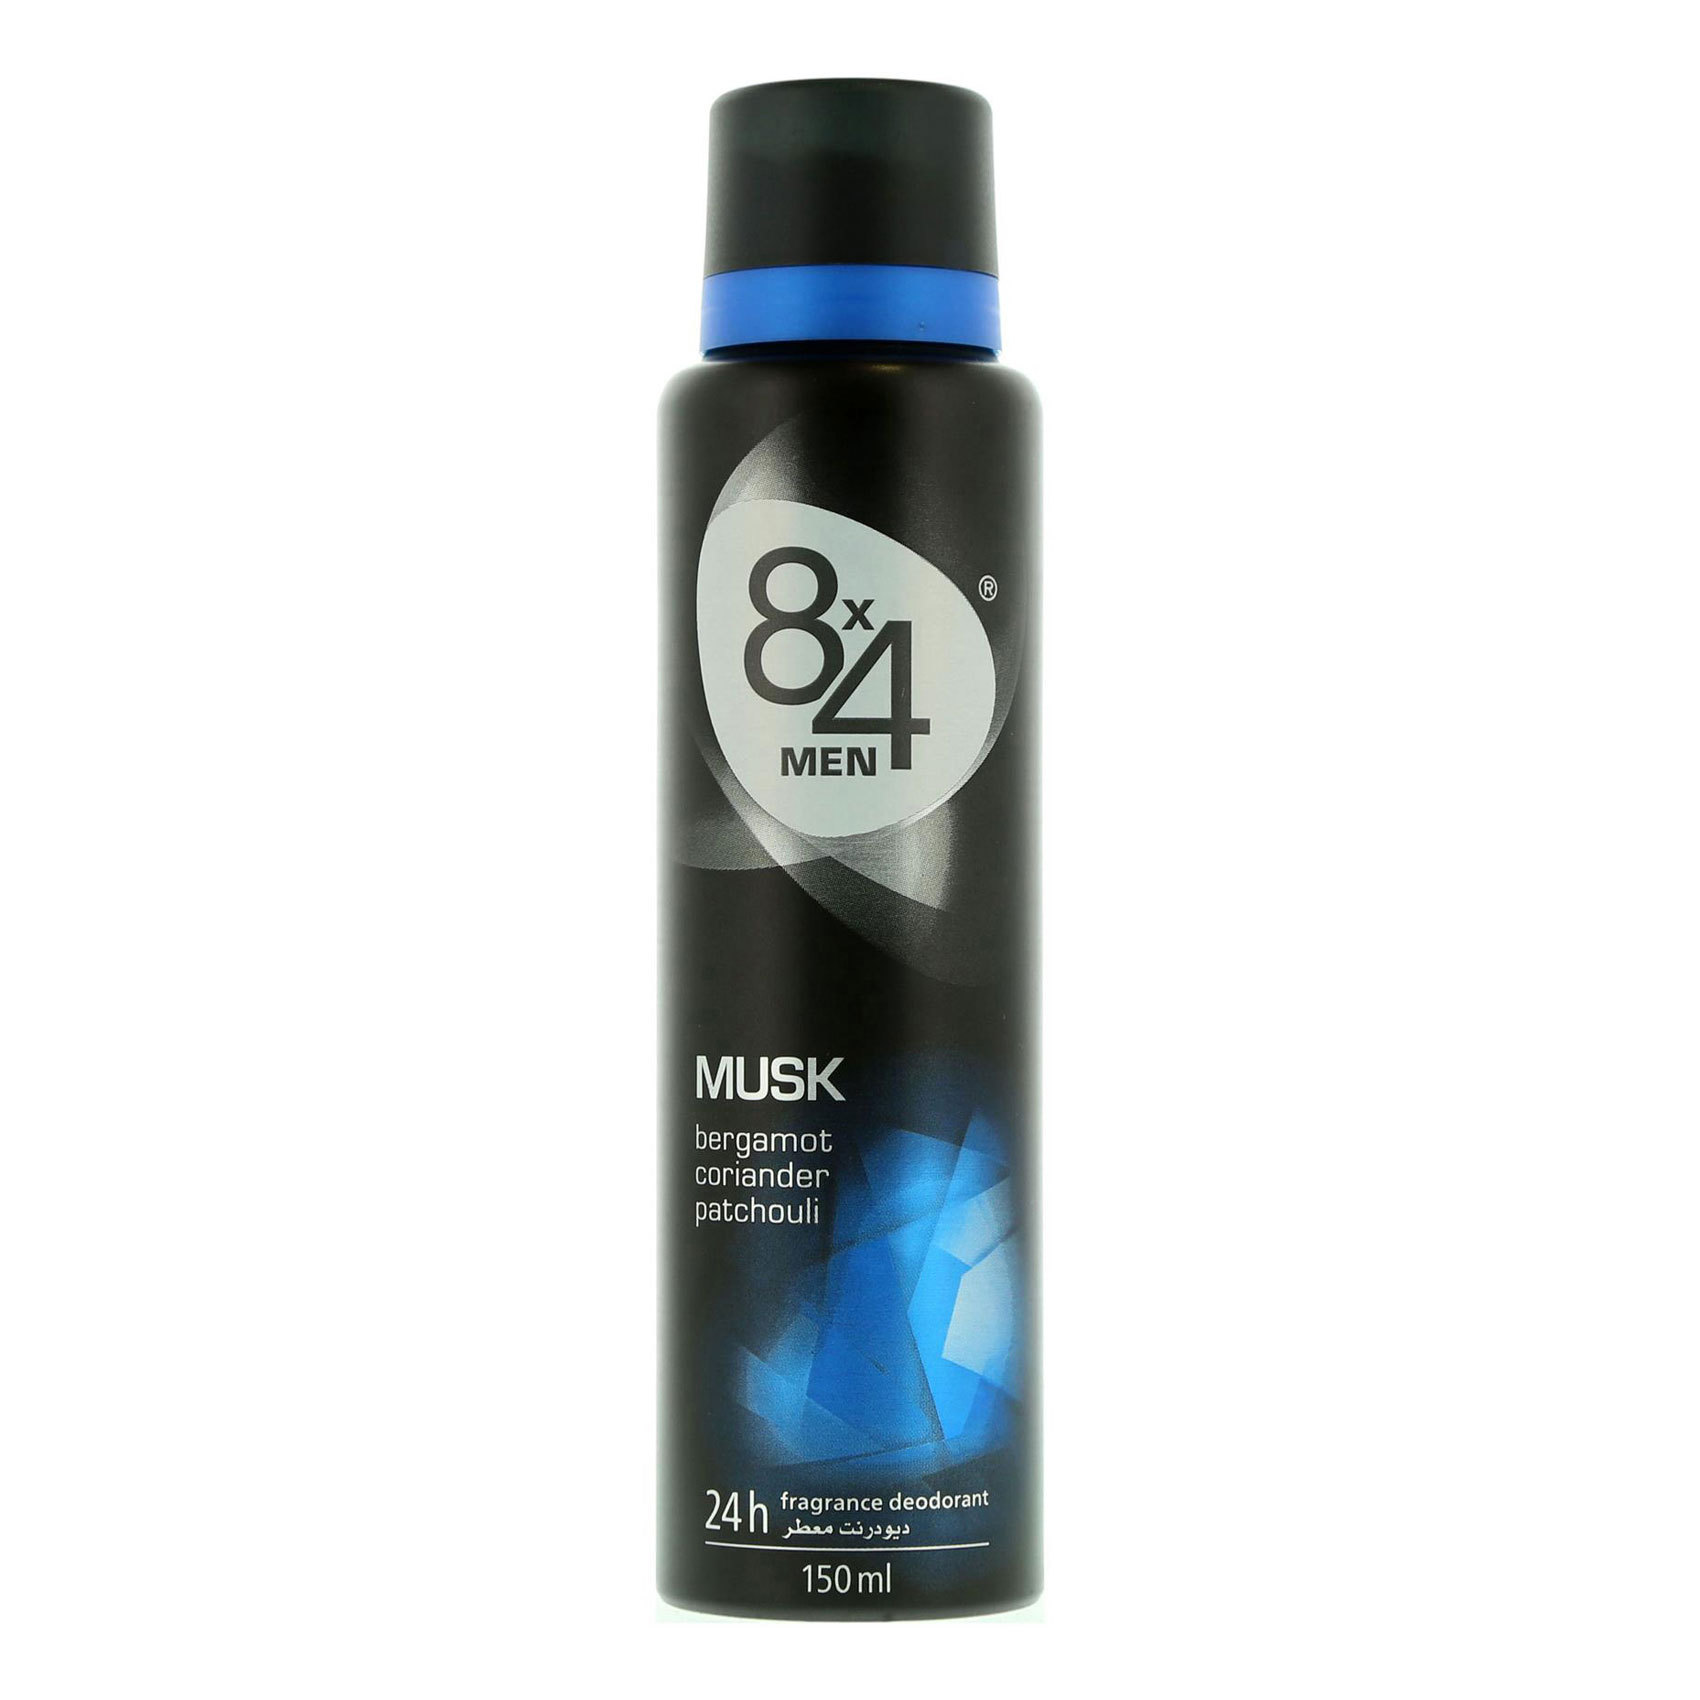 8X4 DEO SPRAY MUSK FOR MEN 150ML